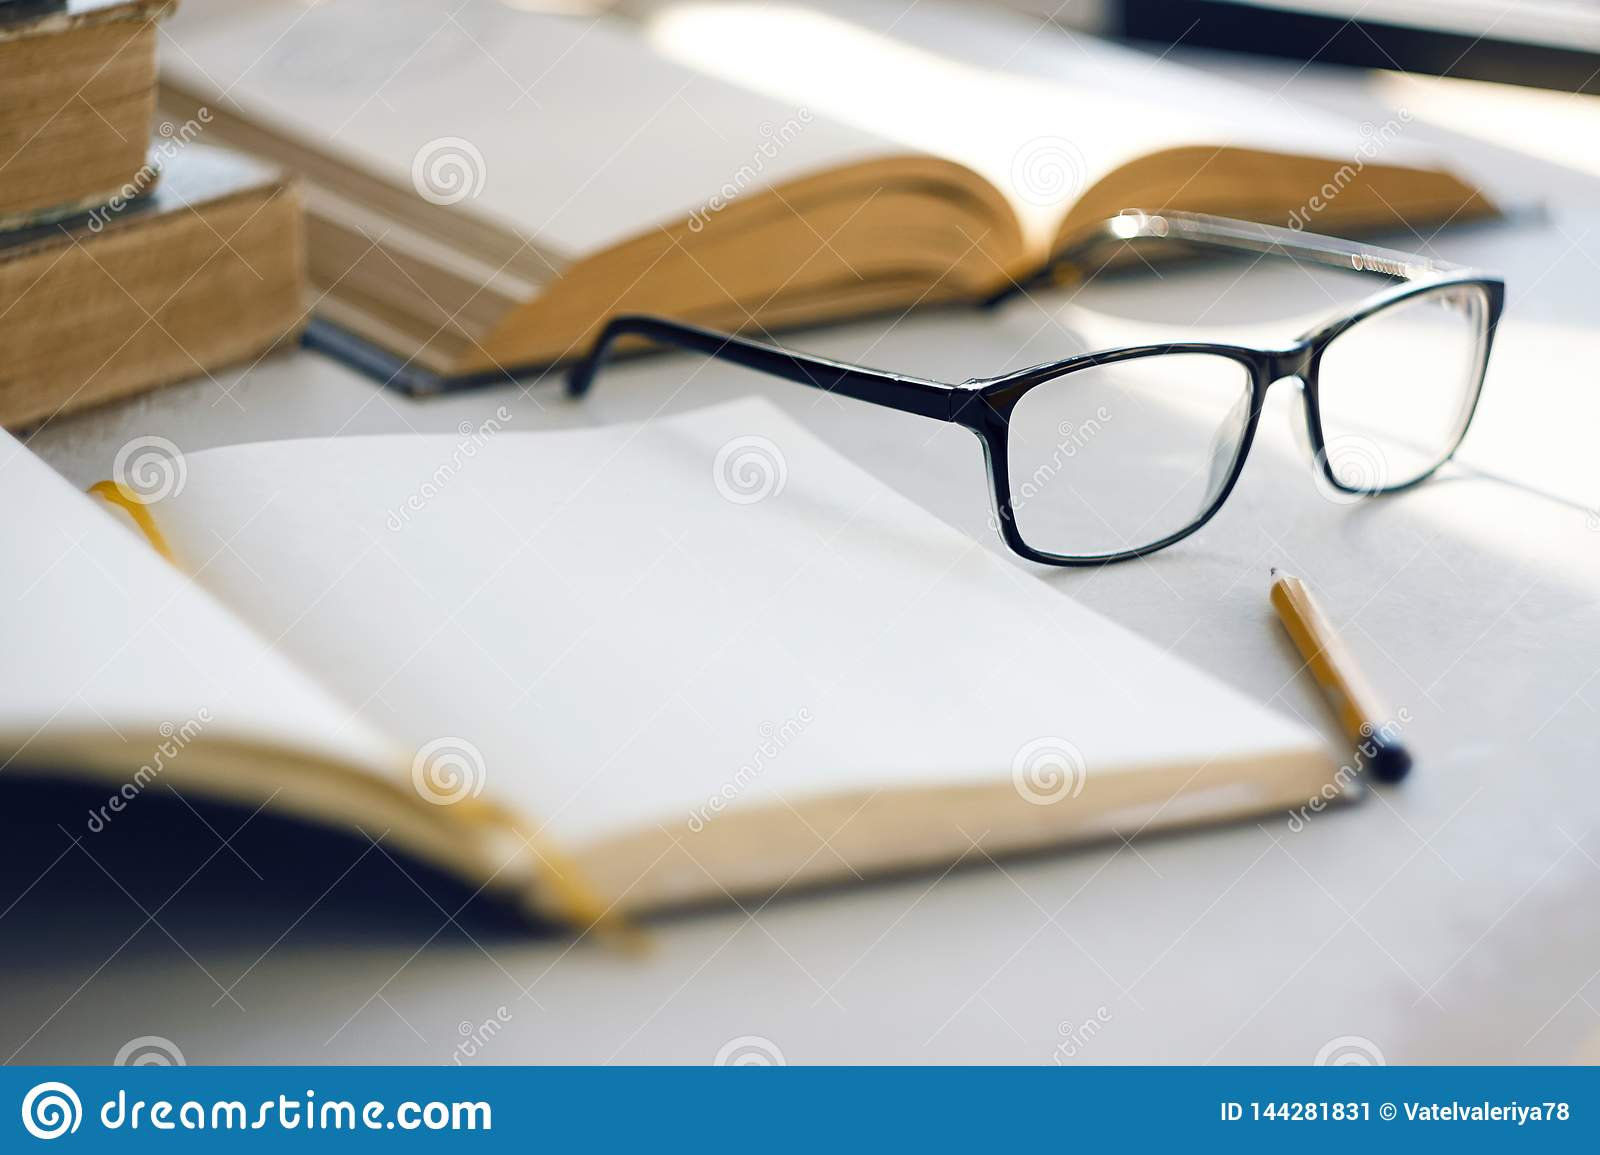 The bright sun illuminates old encyclopedias, an notebook, a simple pencil and glasses